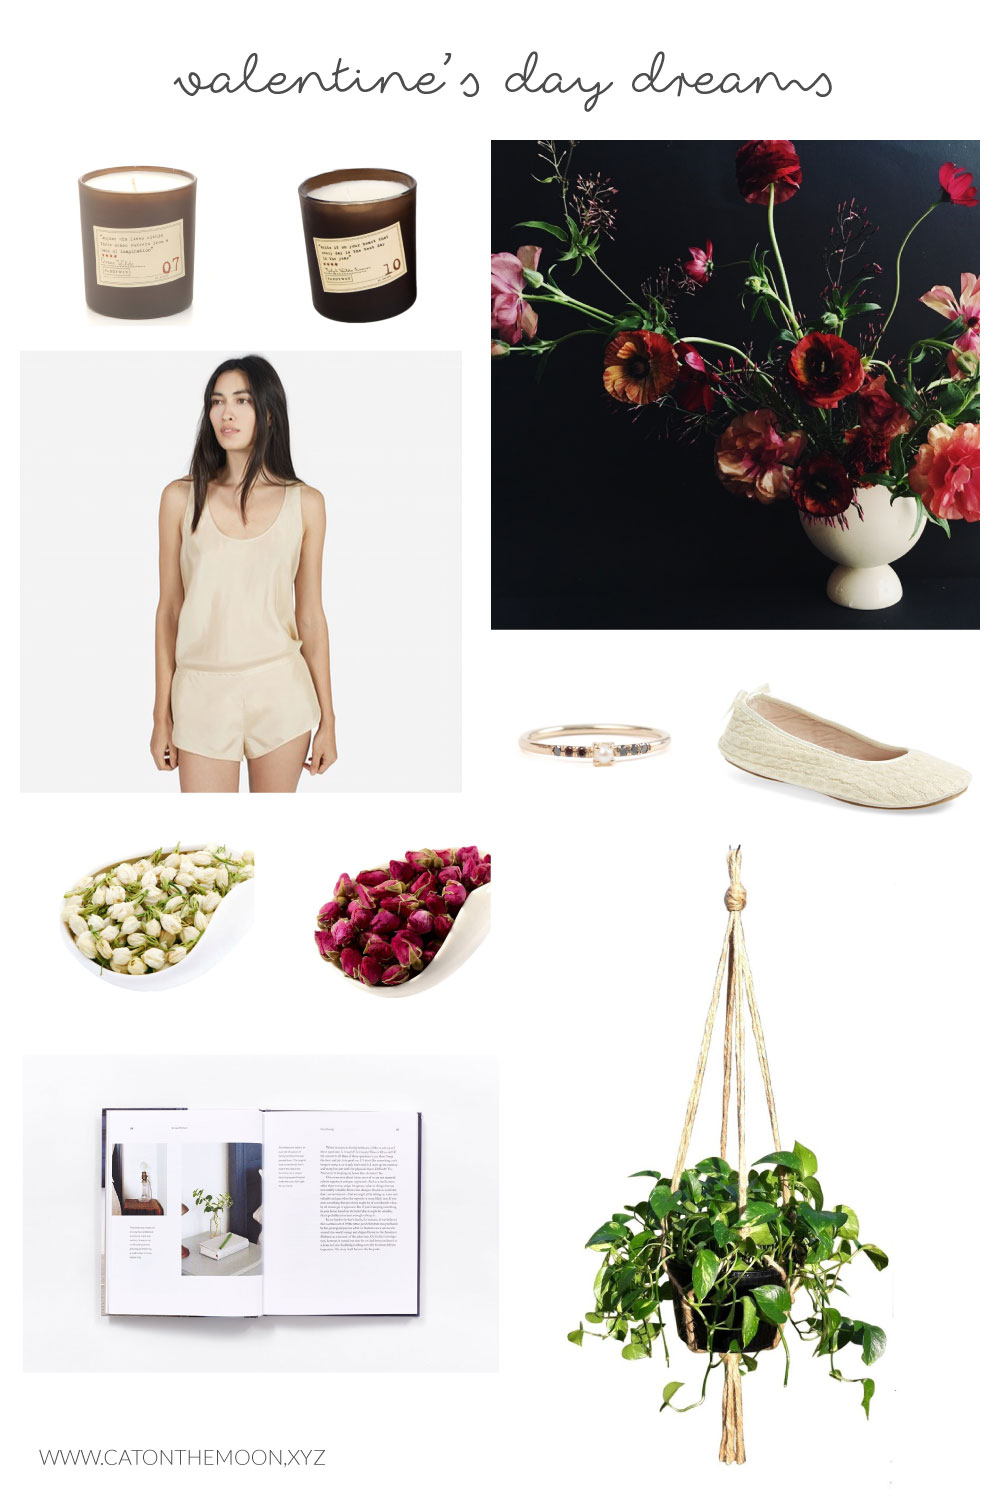 Just dreaming of beautiful things for Valentine's Day... at Cat On The Moon | catonthemoon.xyz A thoughtful style blog for a simple life. Minimalist does not have to mean boring. Neither does simplicity. Come check out what gifts I'm dreaming of for V-Day.